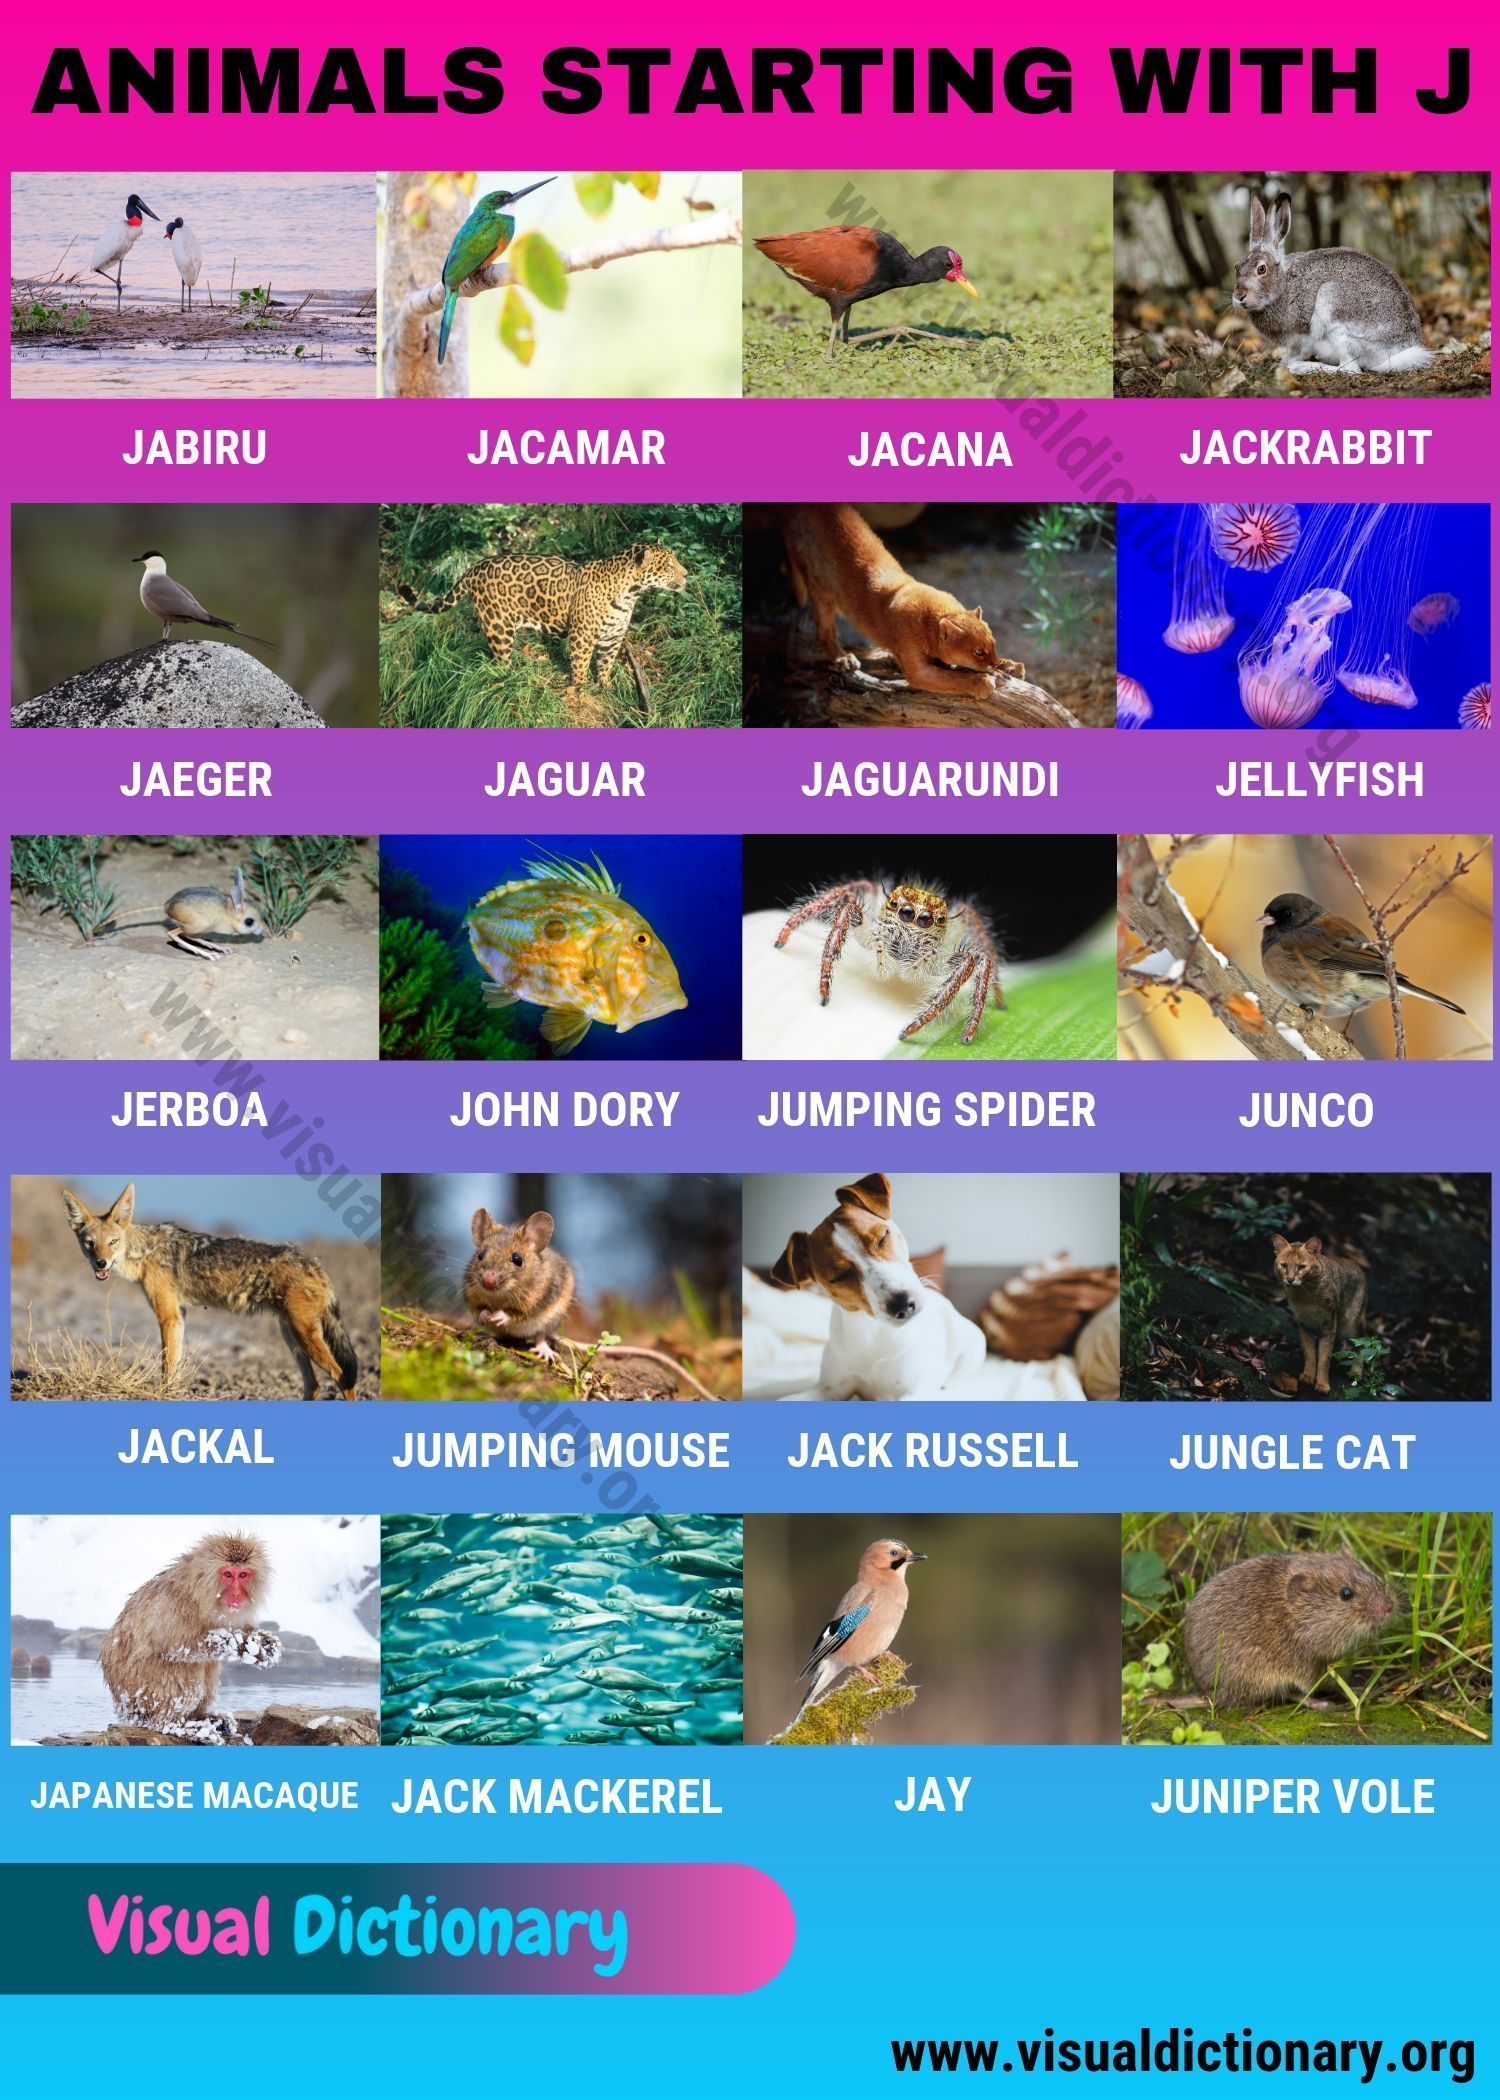 Animals That Start With J Common Names Of 20 Popular Animals Starting With J Visual Dictionary Visual Dictionary Animals Name In English Animals